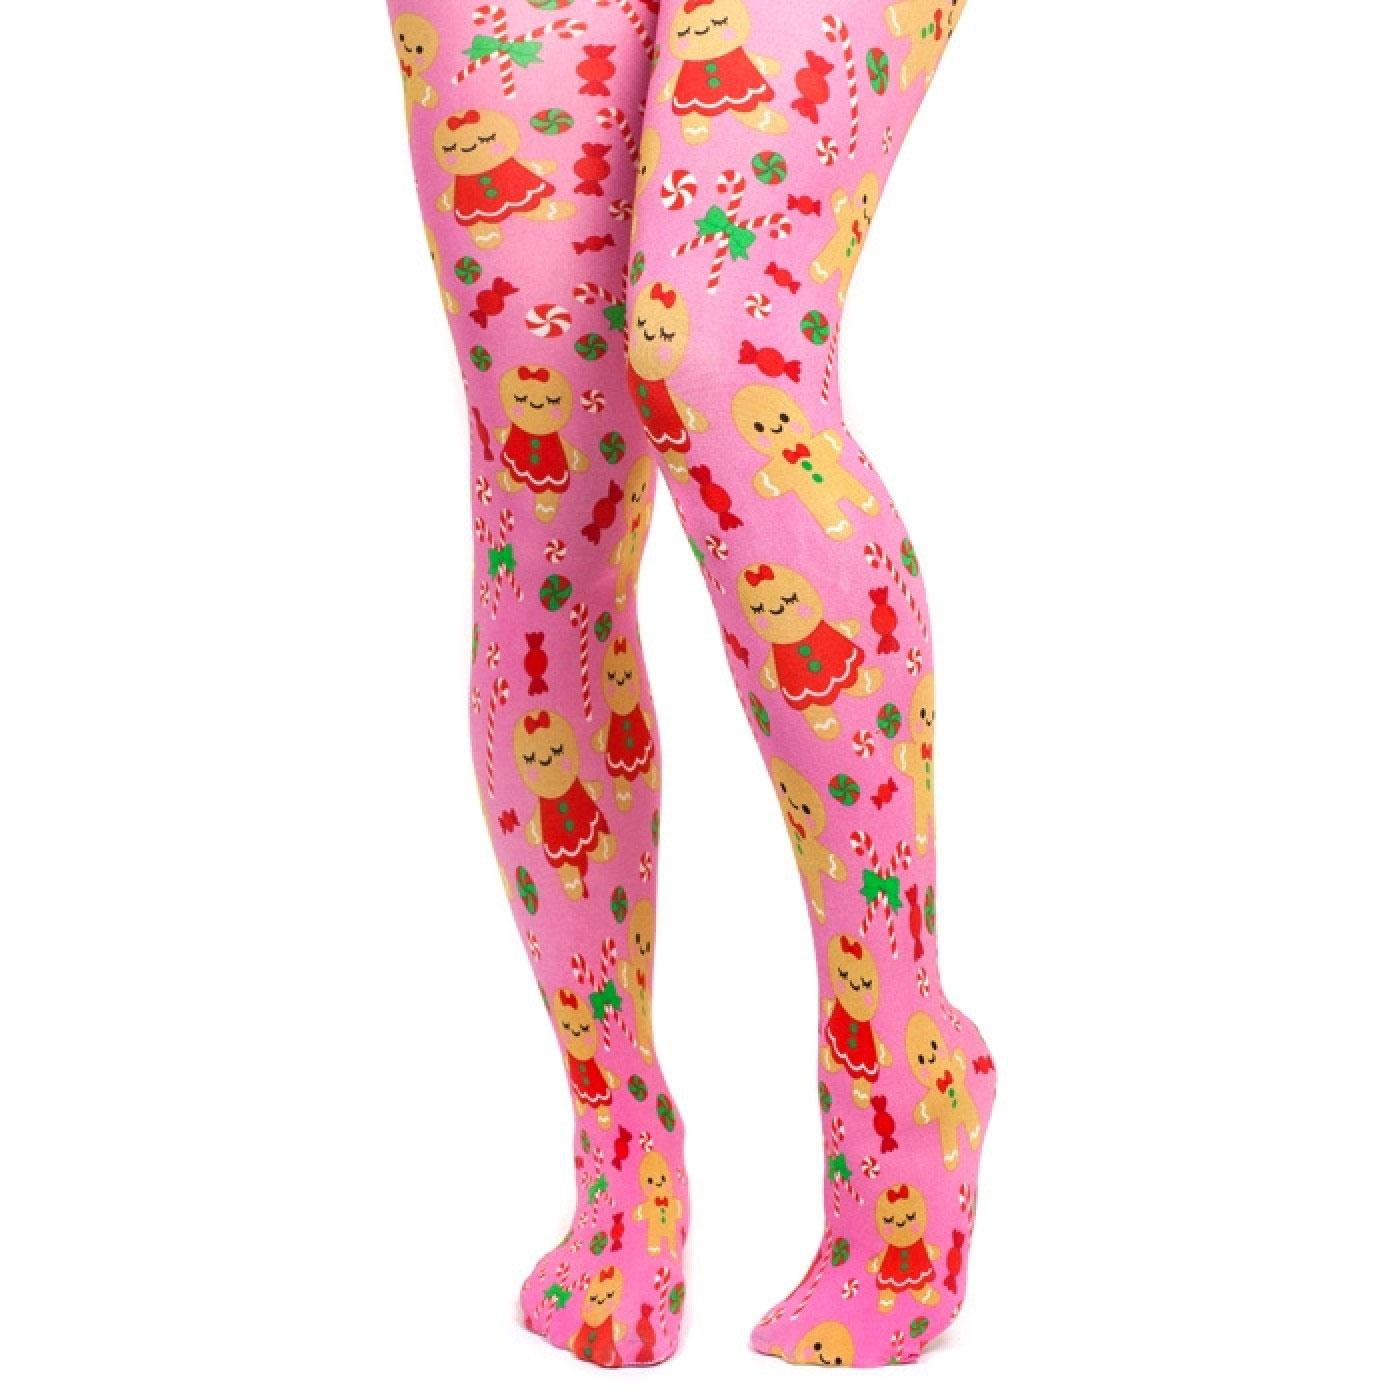 Gingerbread People IRREGULAR CHOICE Tights Pink